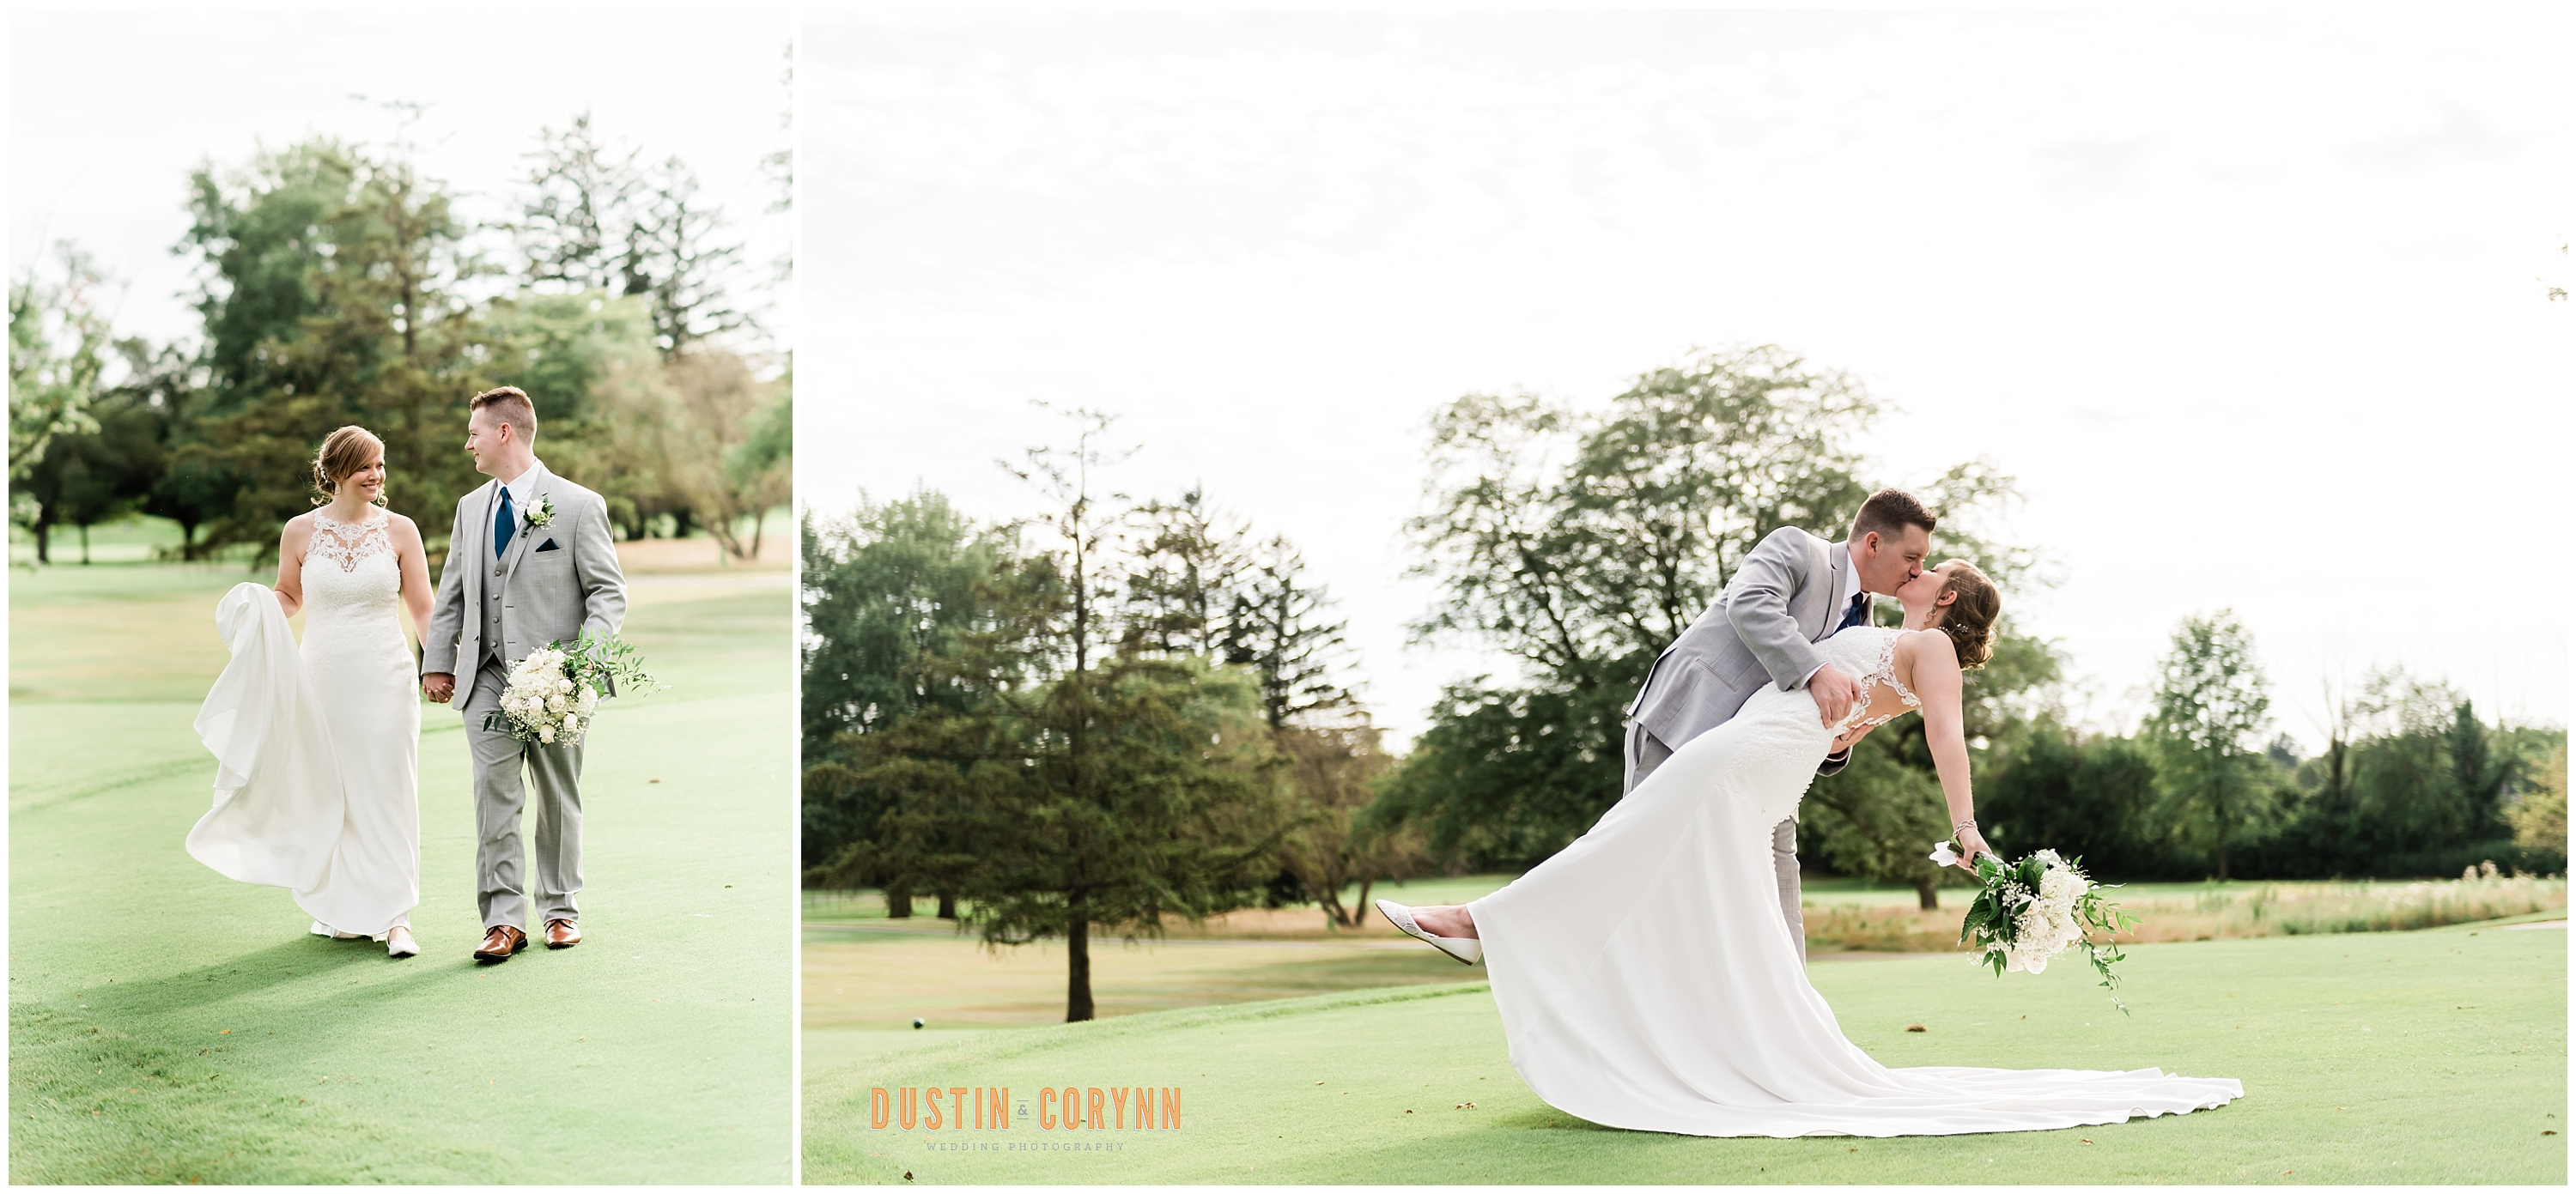 Bride and Groom Portraits at Decorations at the Orchard Ridge Country Club